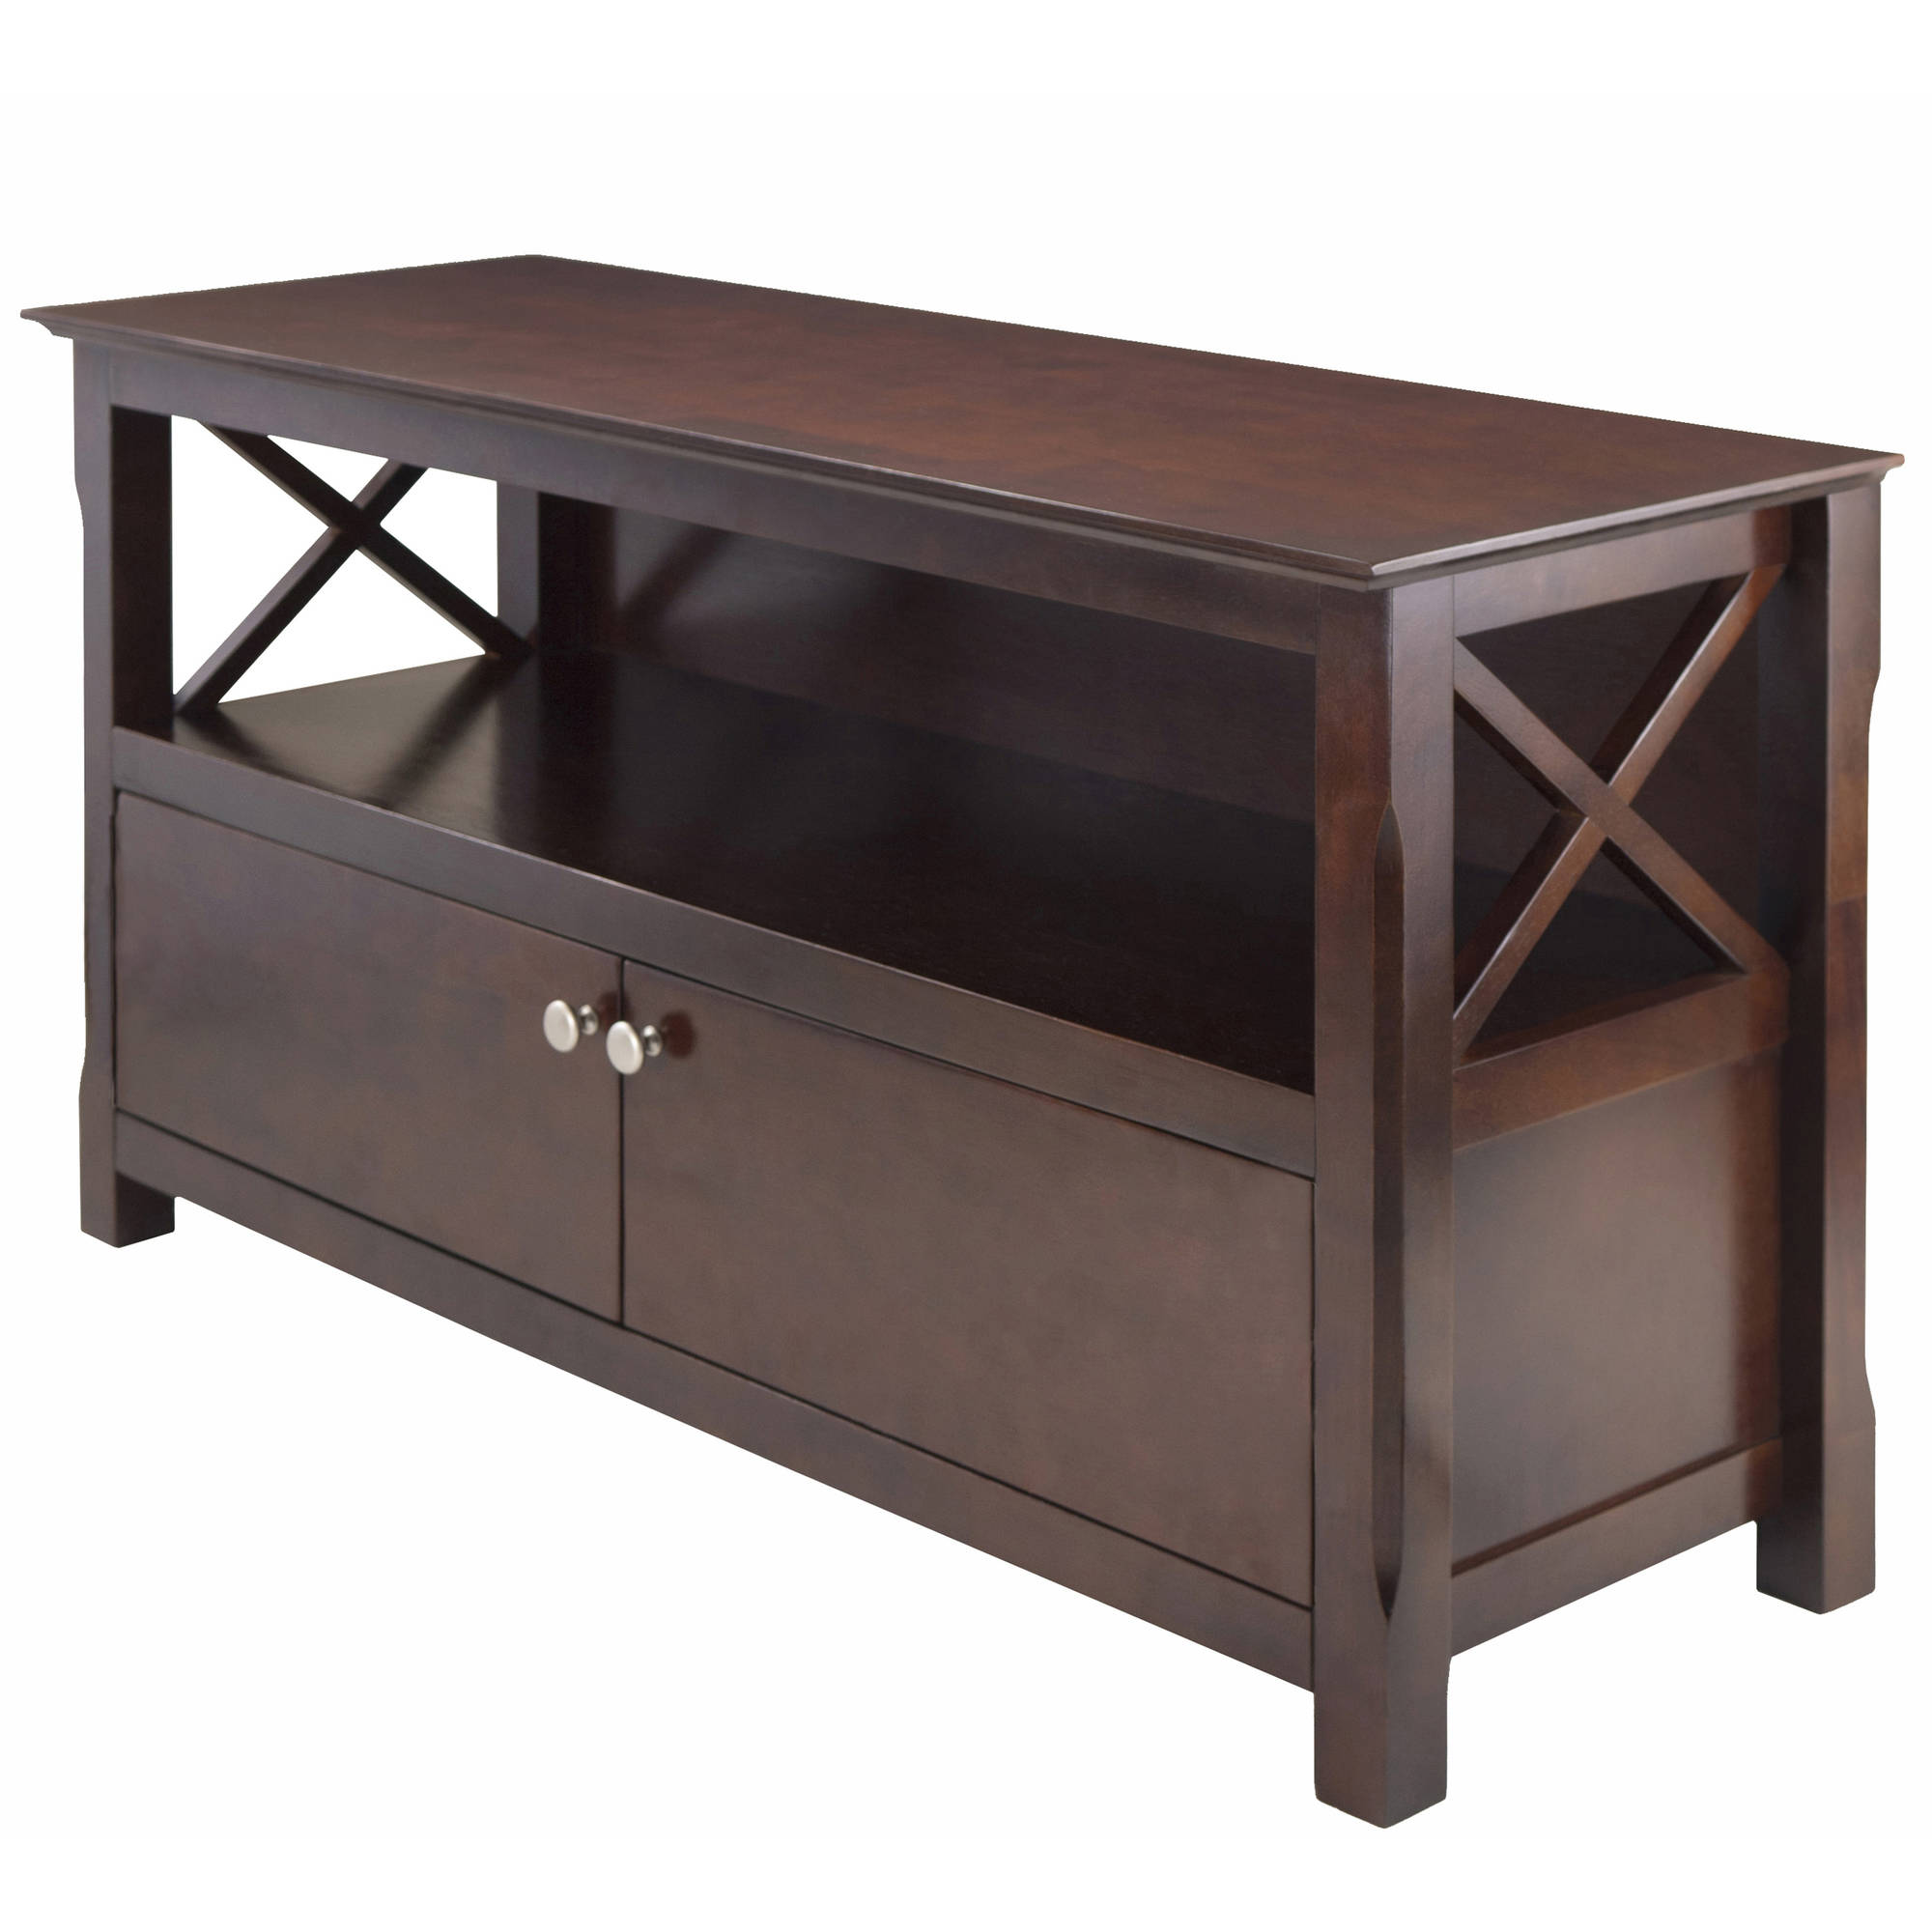 Winsome Xola Cappuccino TV Stand for TVs up to 46""